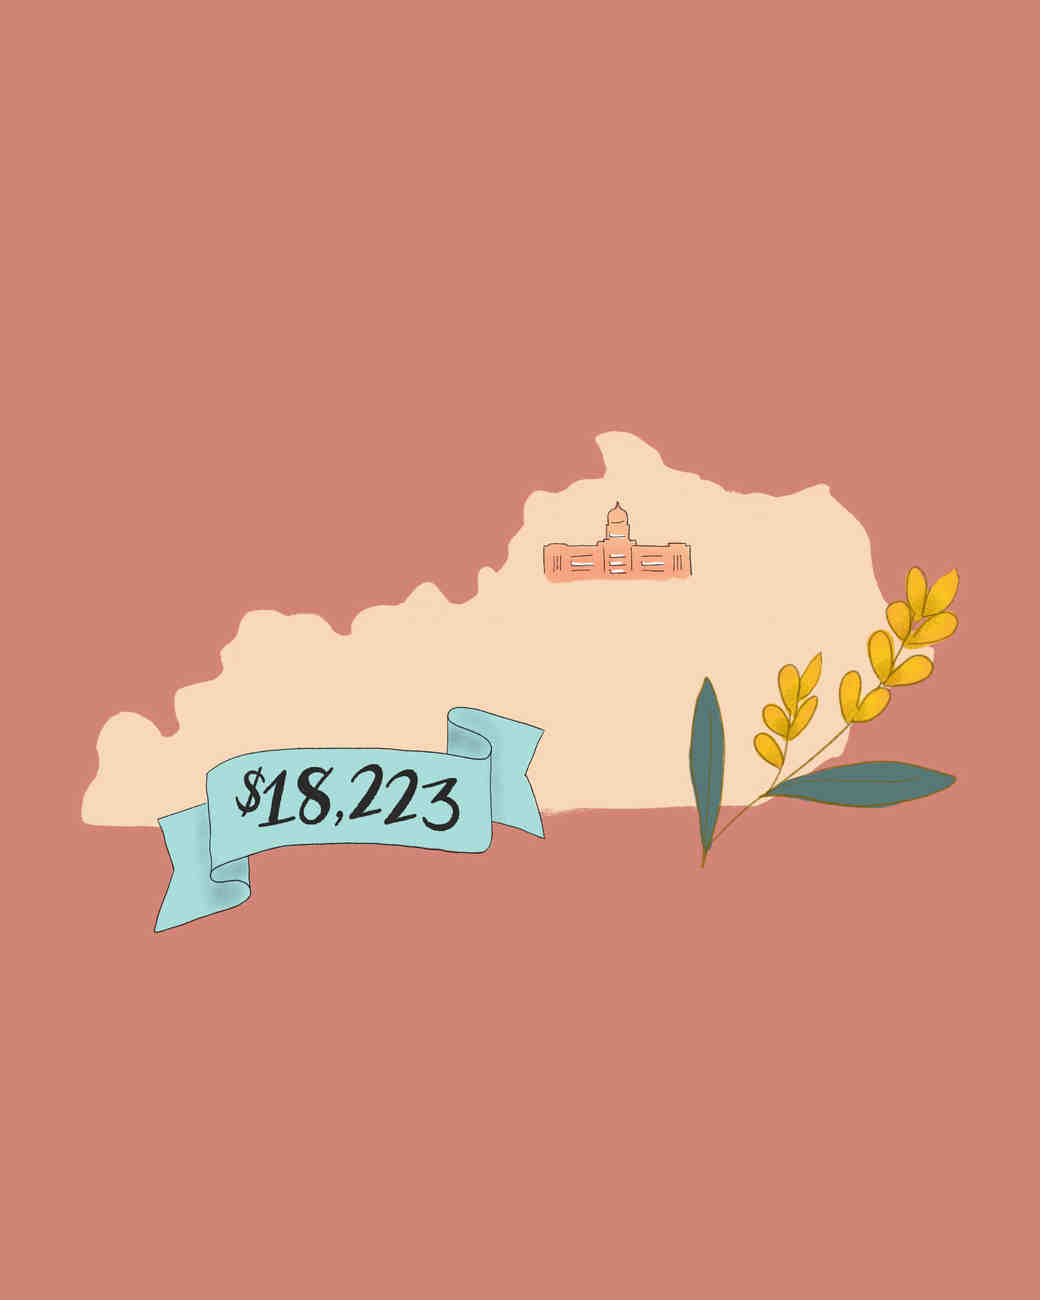 state wedding costs illustration kentucky